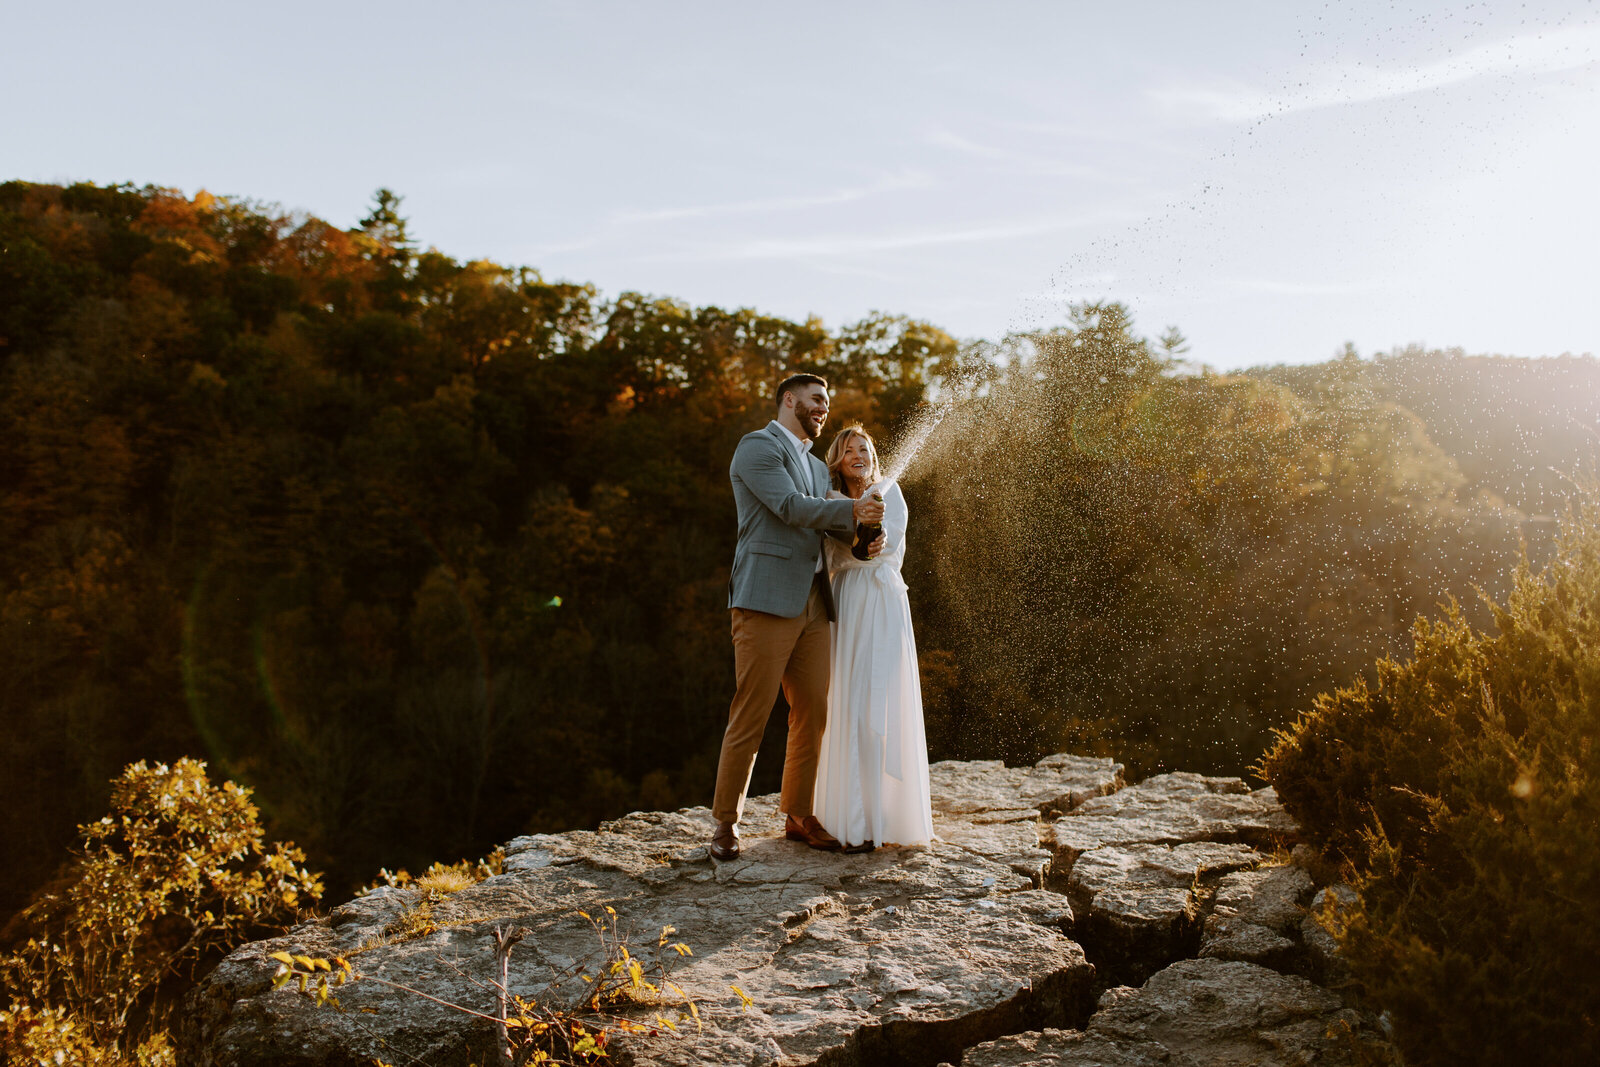 Sunset engagement session outside Rochester Minnesota by Skyler and Vhan